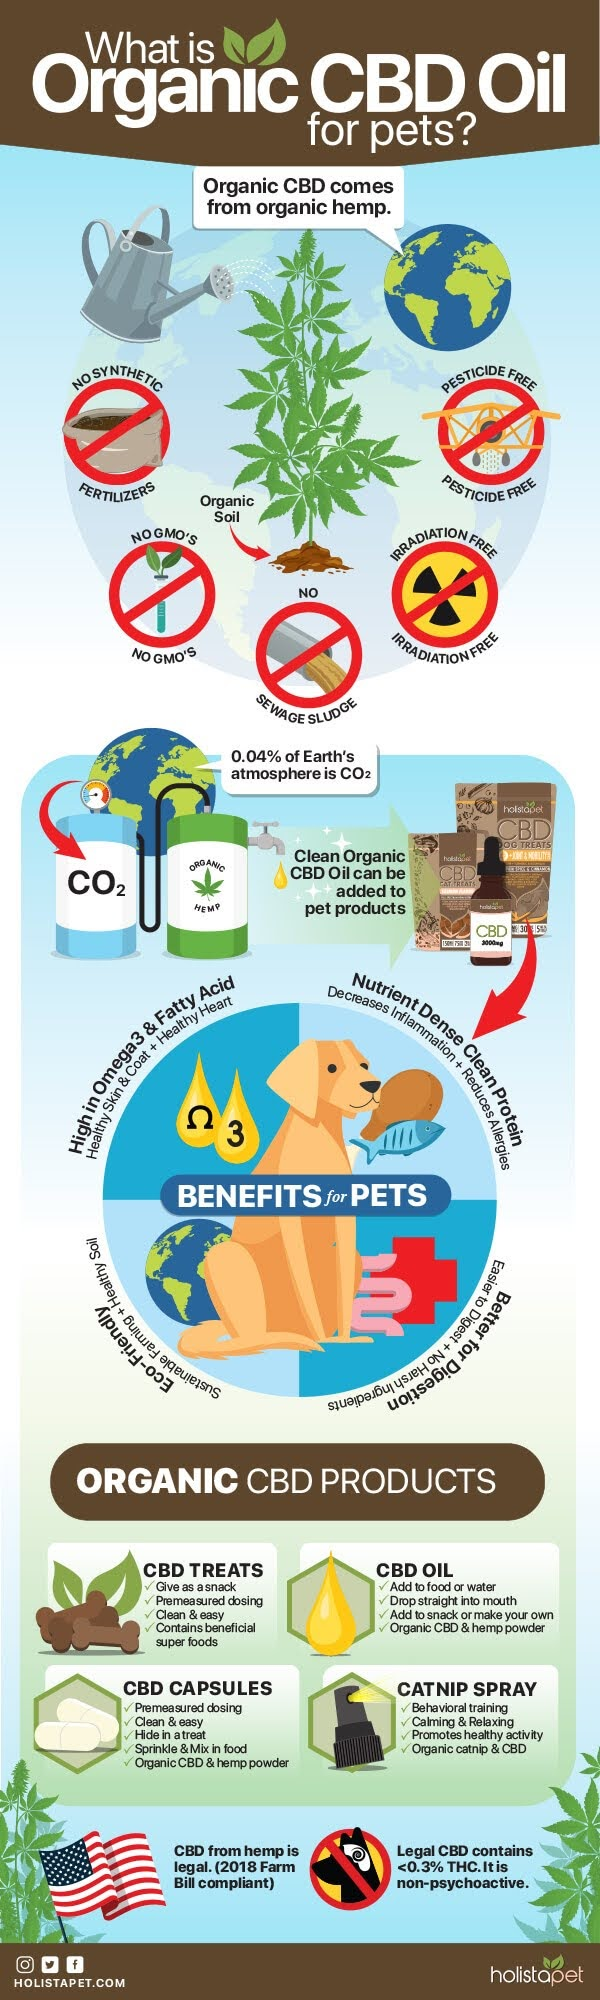 What is Organic CBD Oil for Pets? #infographic